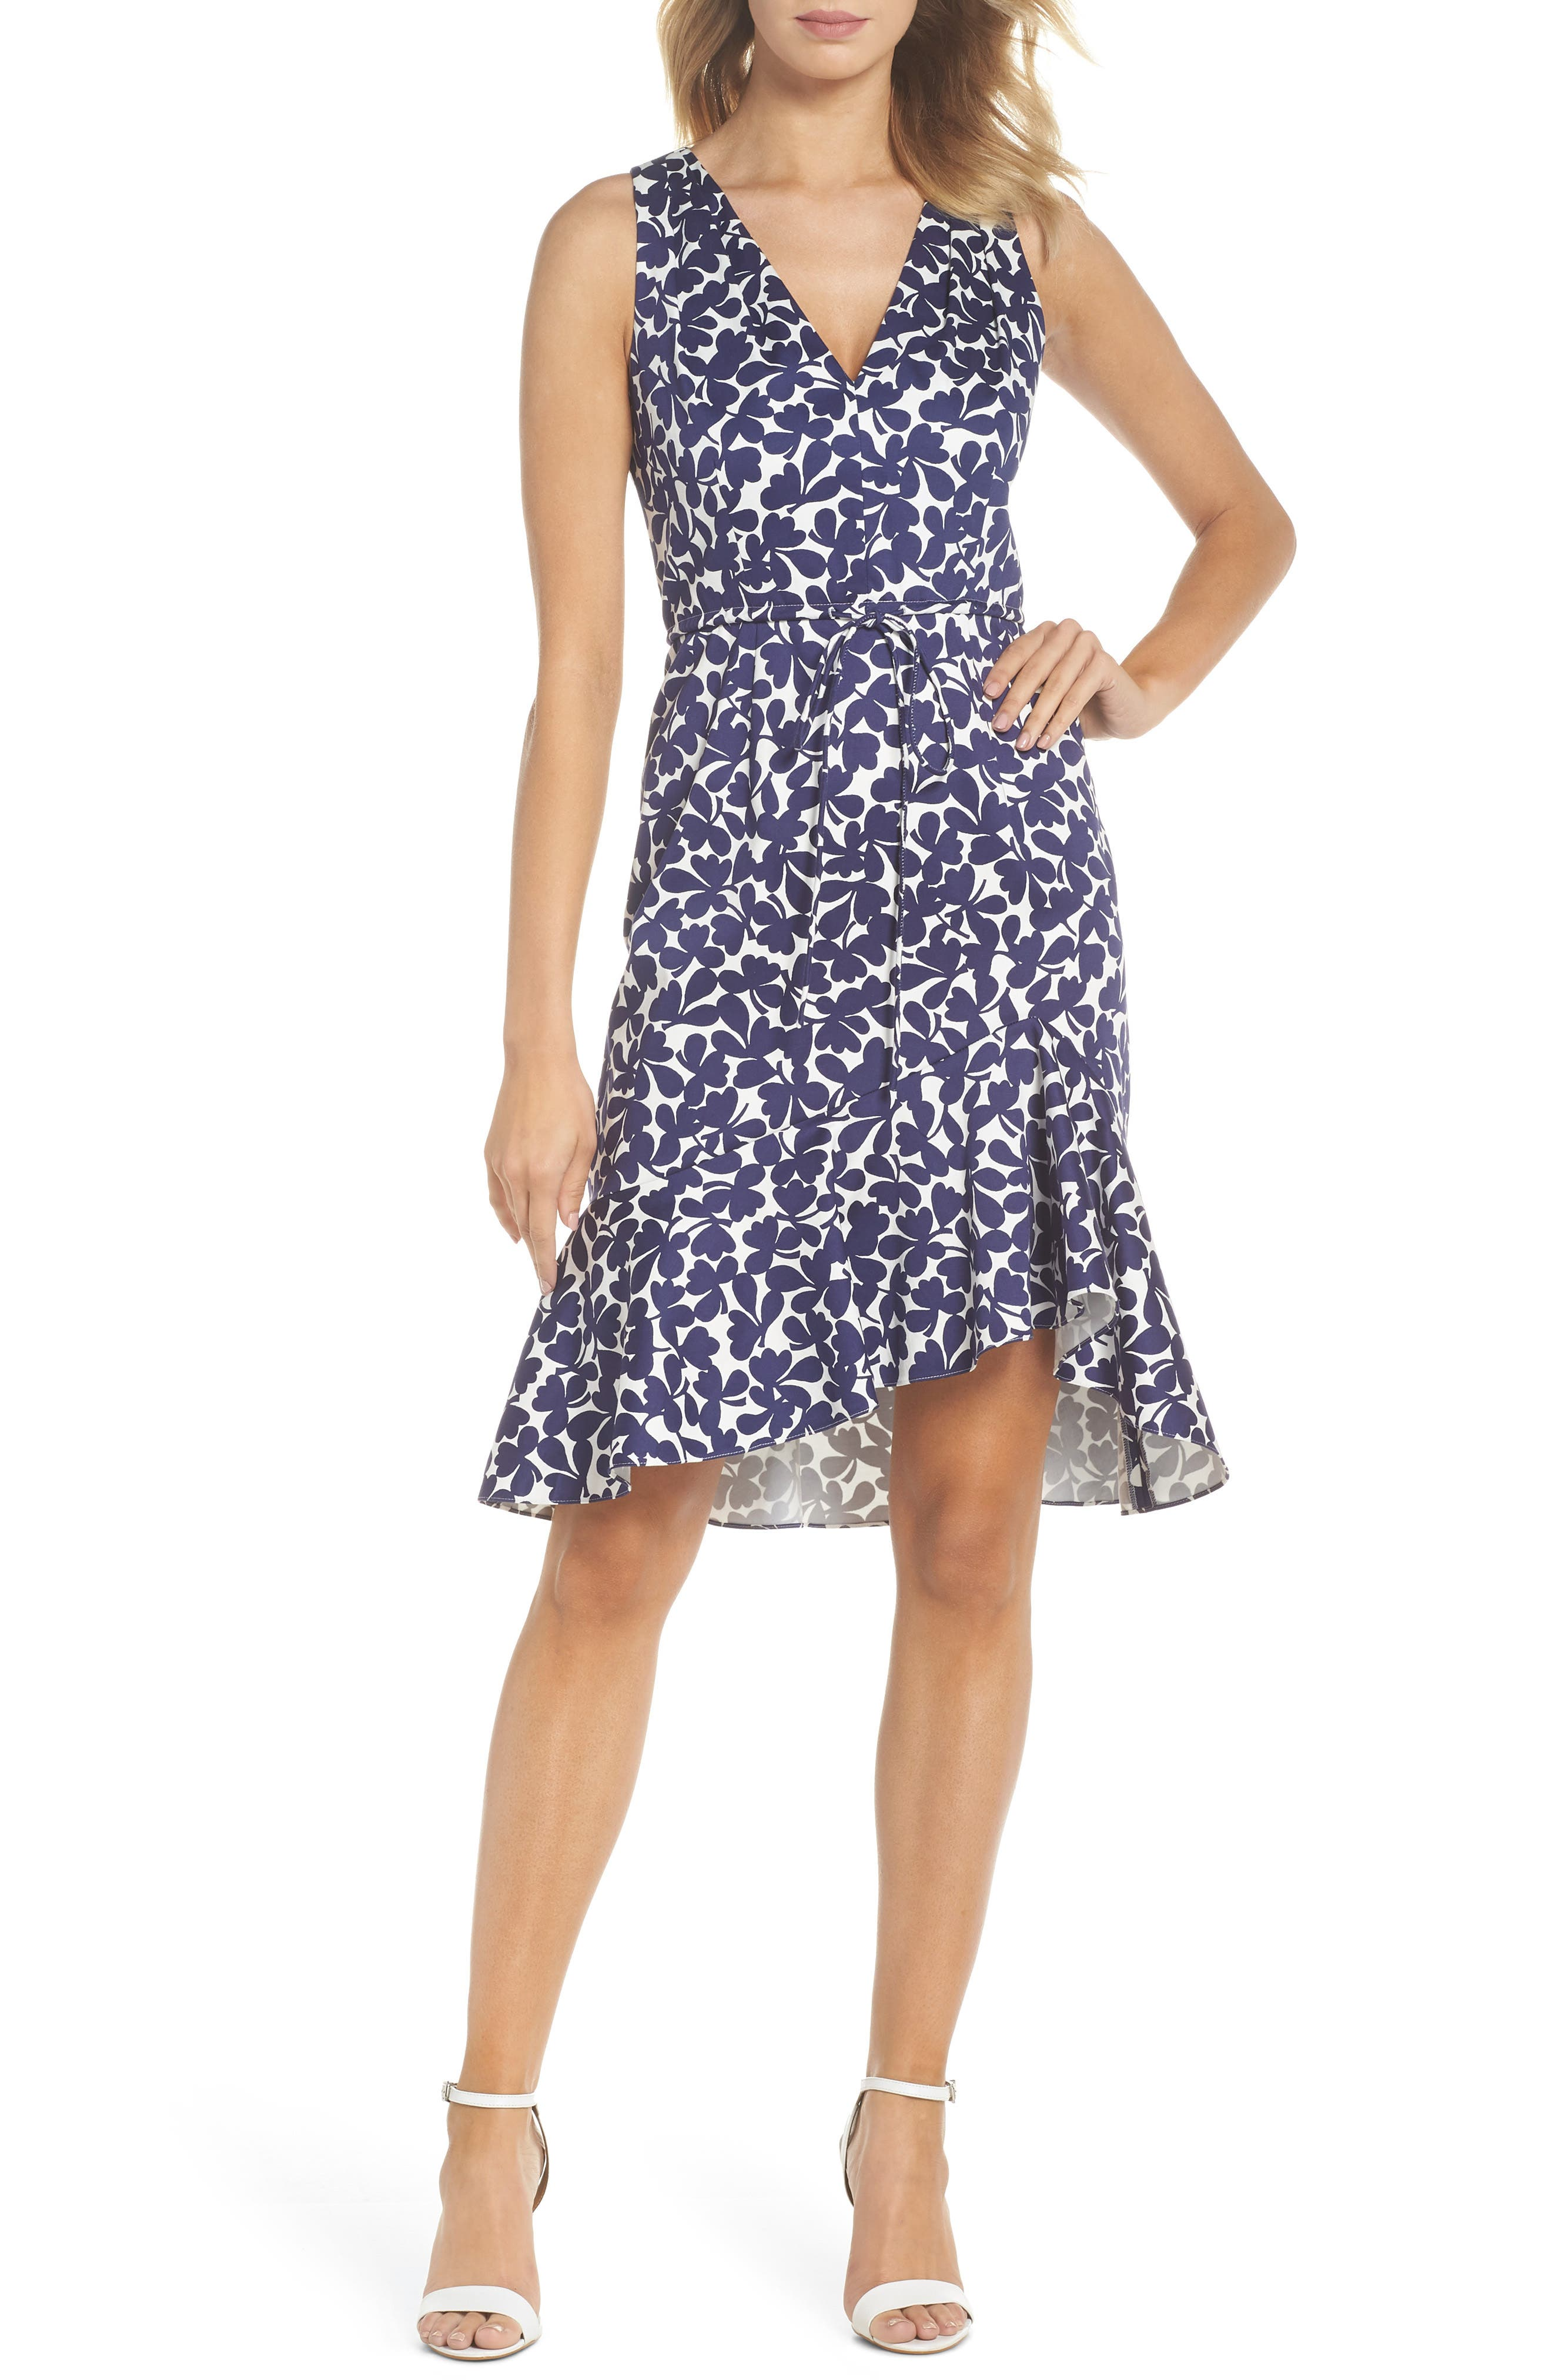 Lady Luck Print Cotton Sateen Dress,                         Main,                         color, Navy/ Ivory